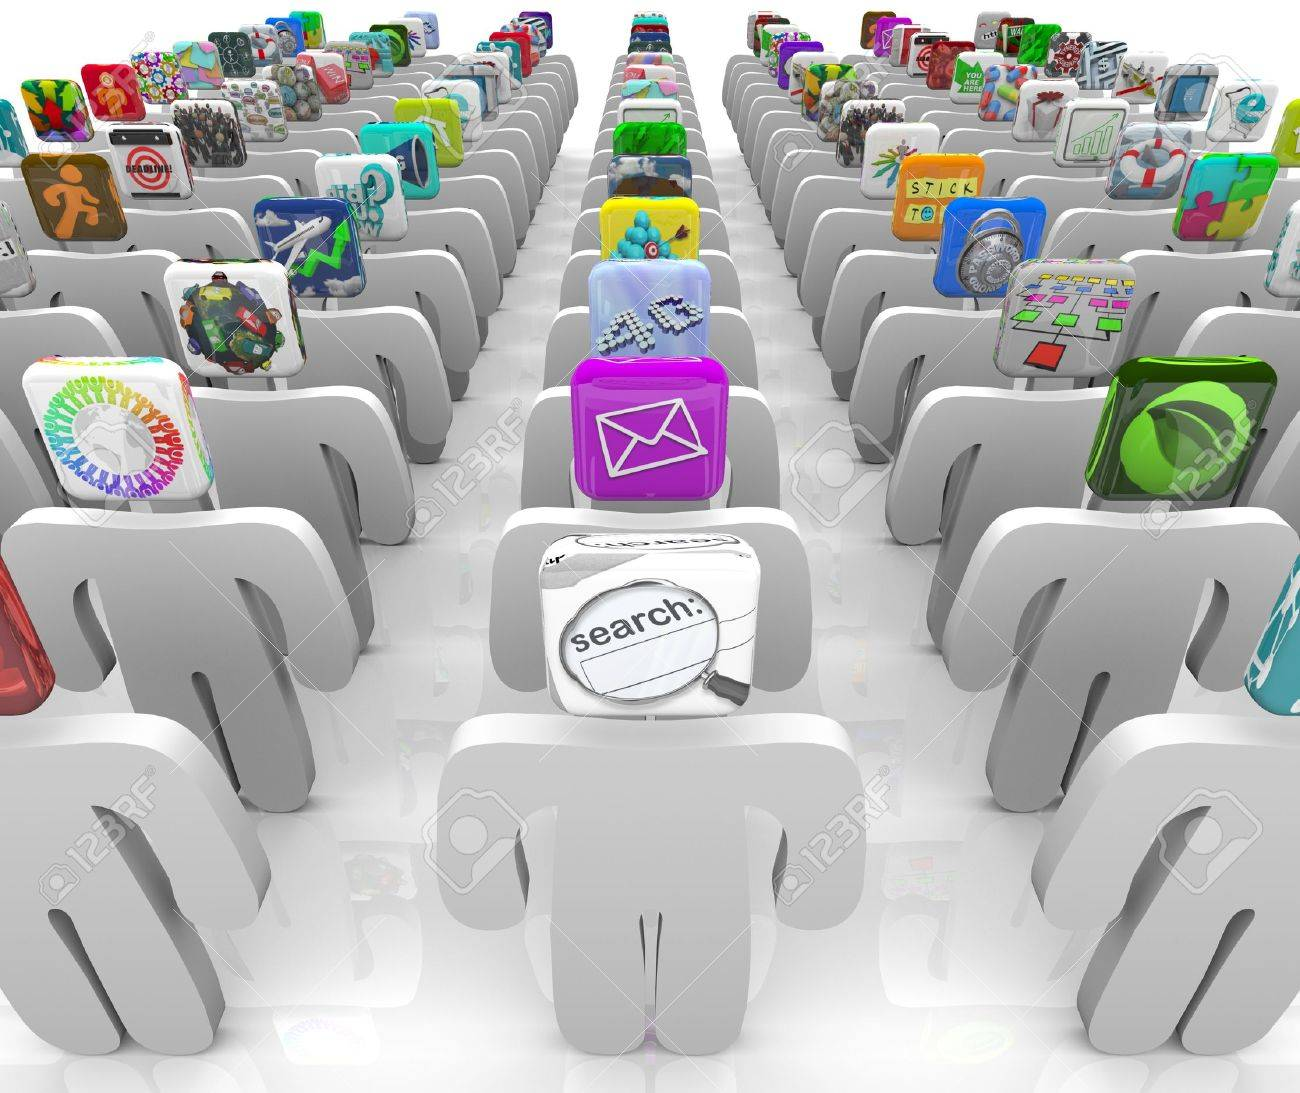 Many people with app tiles for heads stand in rows symbolizing the vast selection of the online software marketplace Stock Photo - 8646819